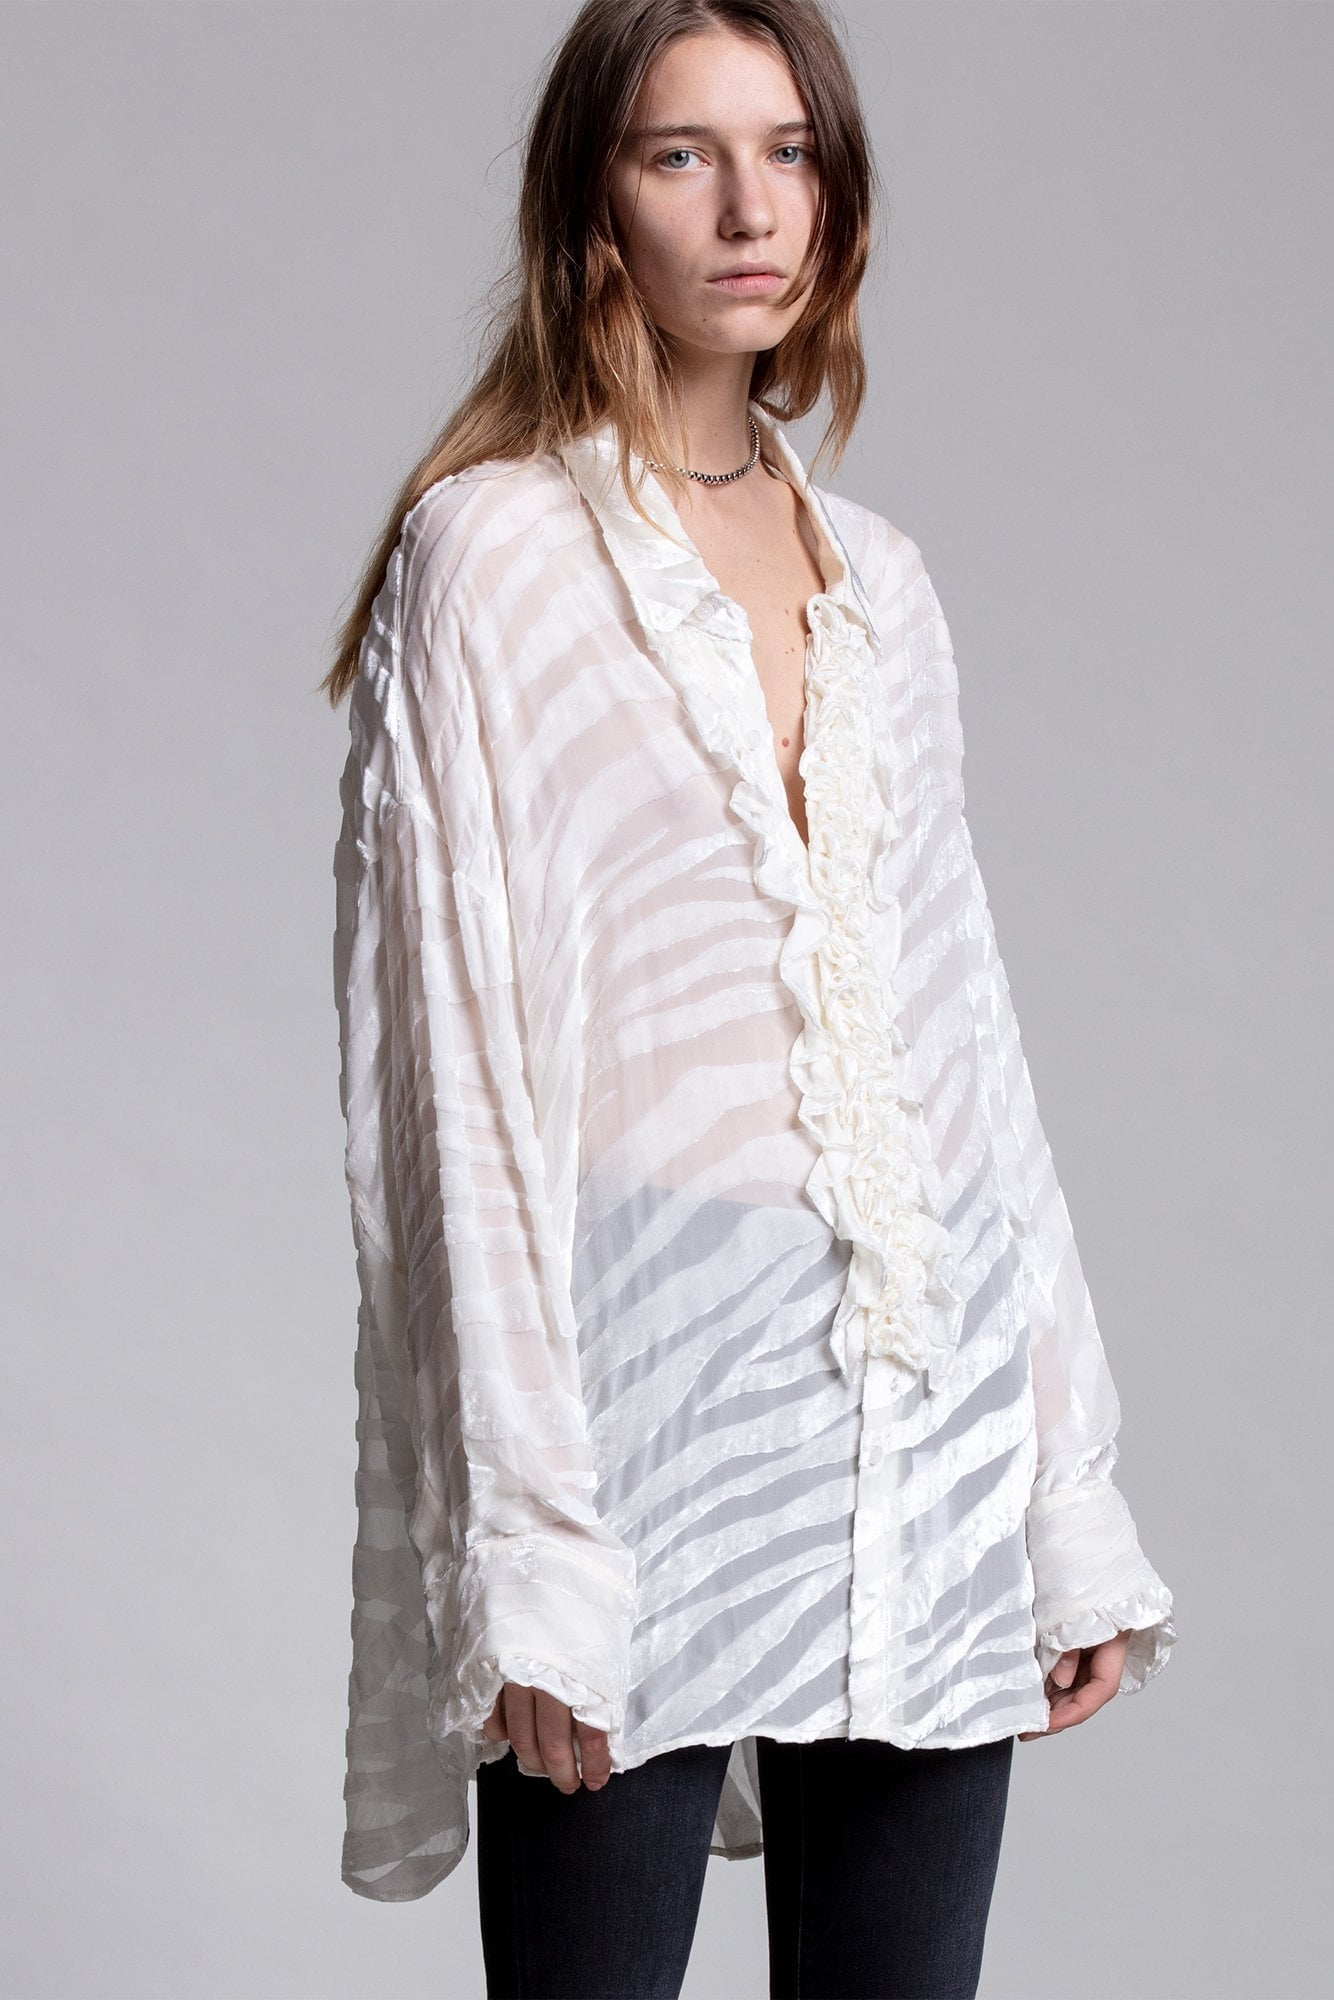 Drop Neck Tuxedo Shirt - White Zebra